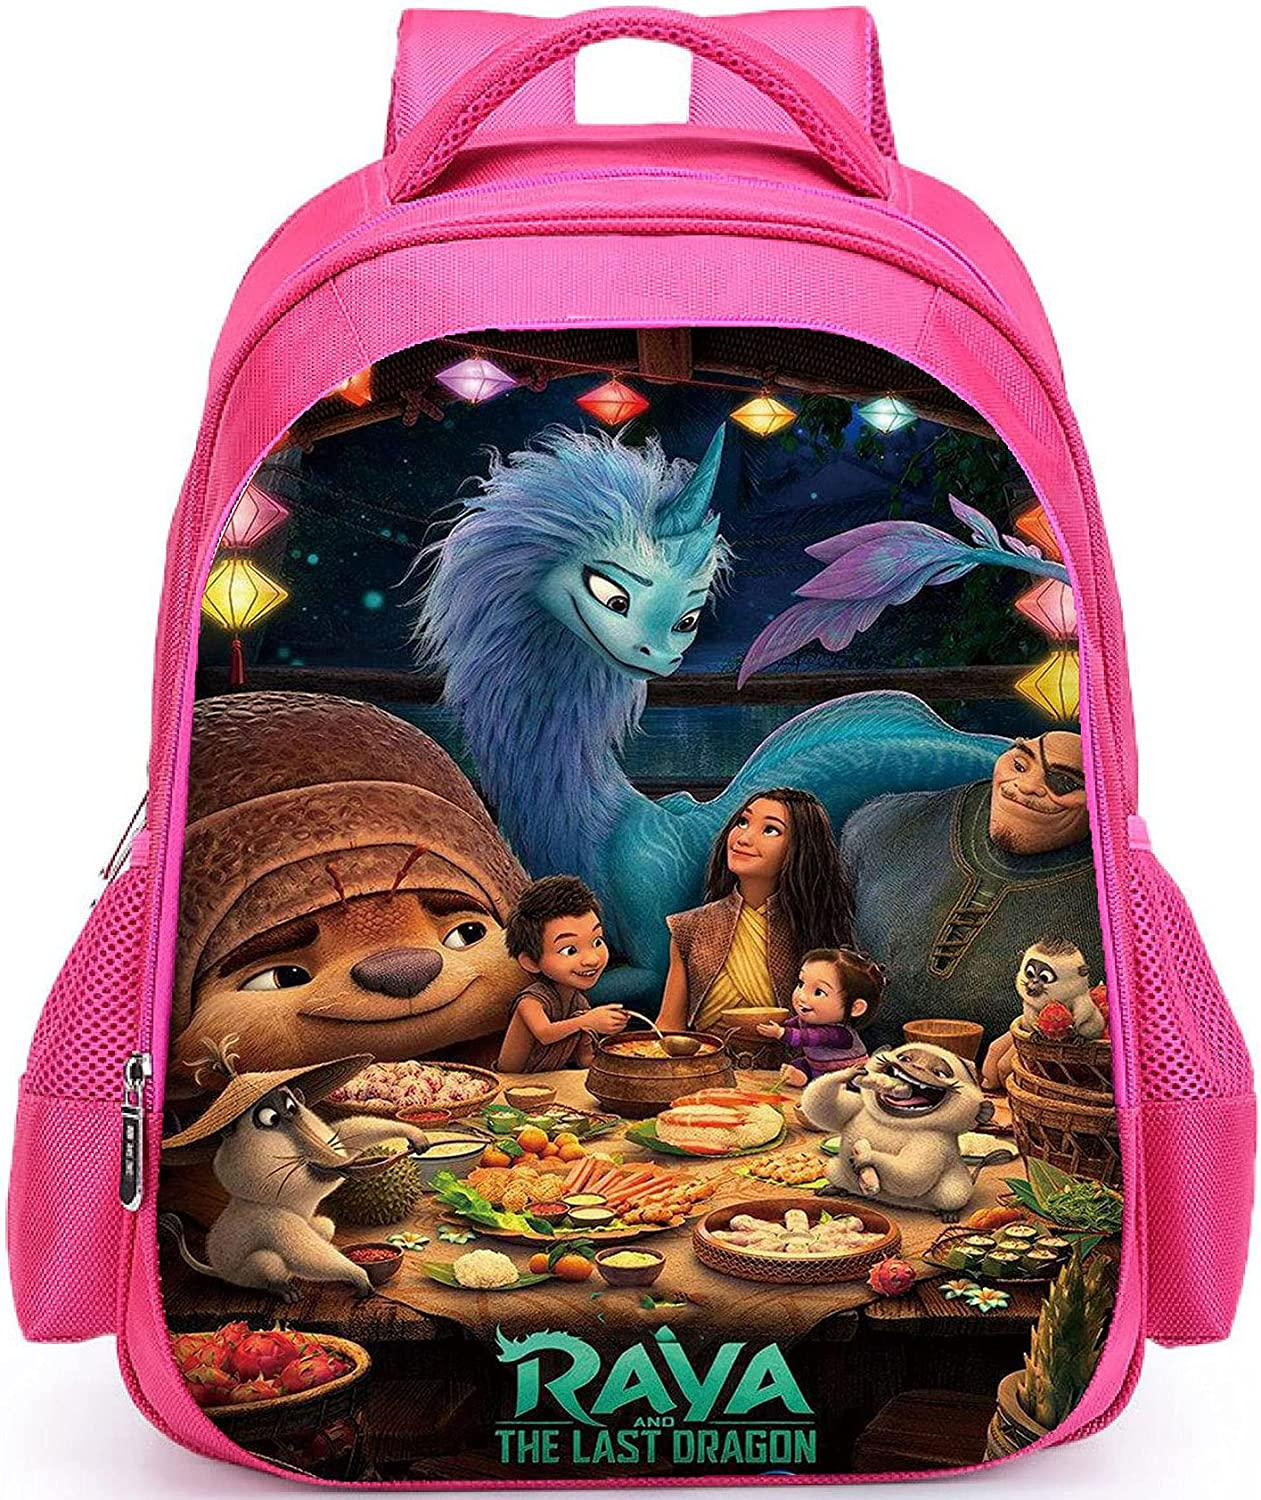 Surprise price Raya And The Last 25% OFF Dragon Backpack Cartoon Kids 3D Prin for Anime